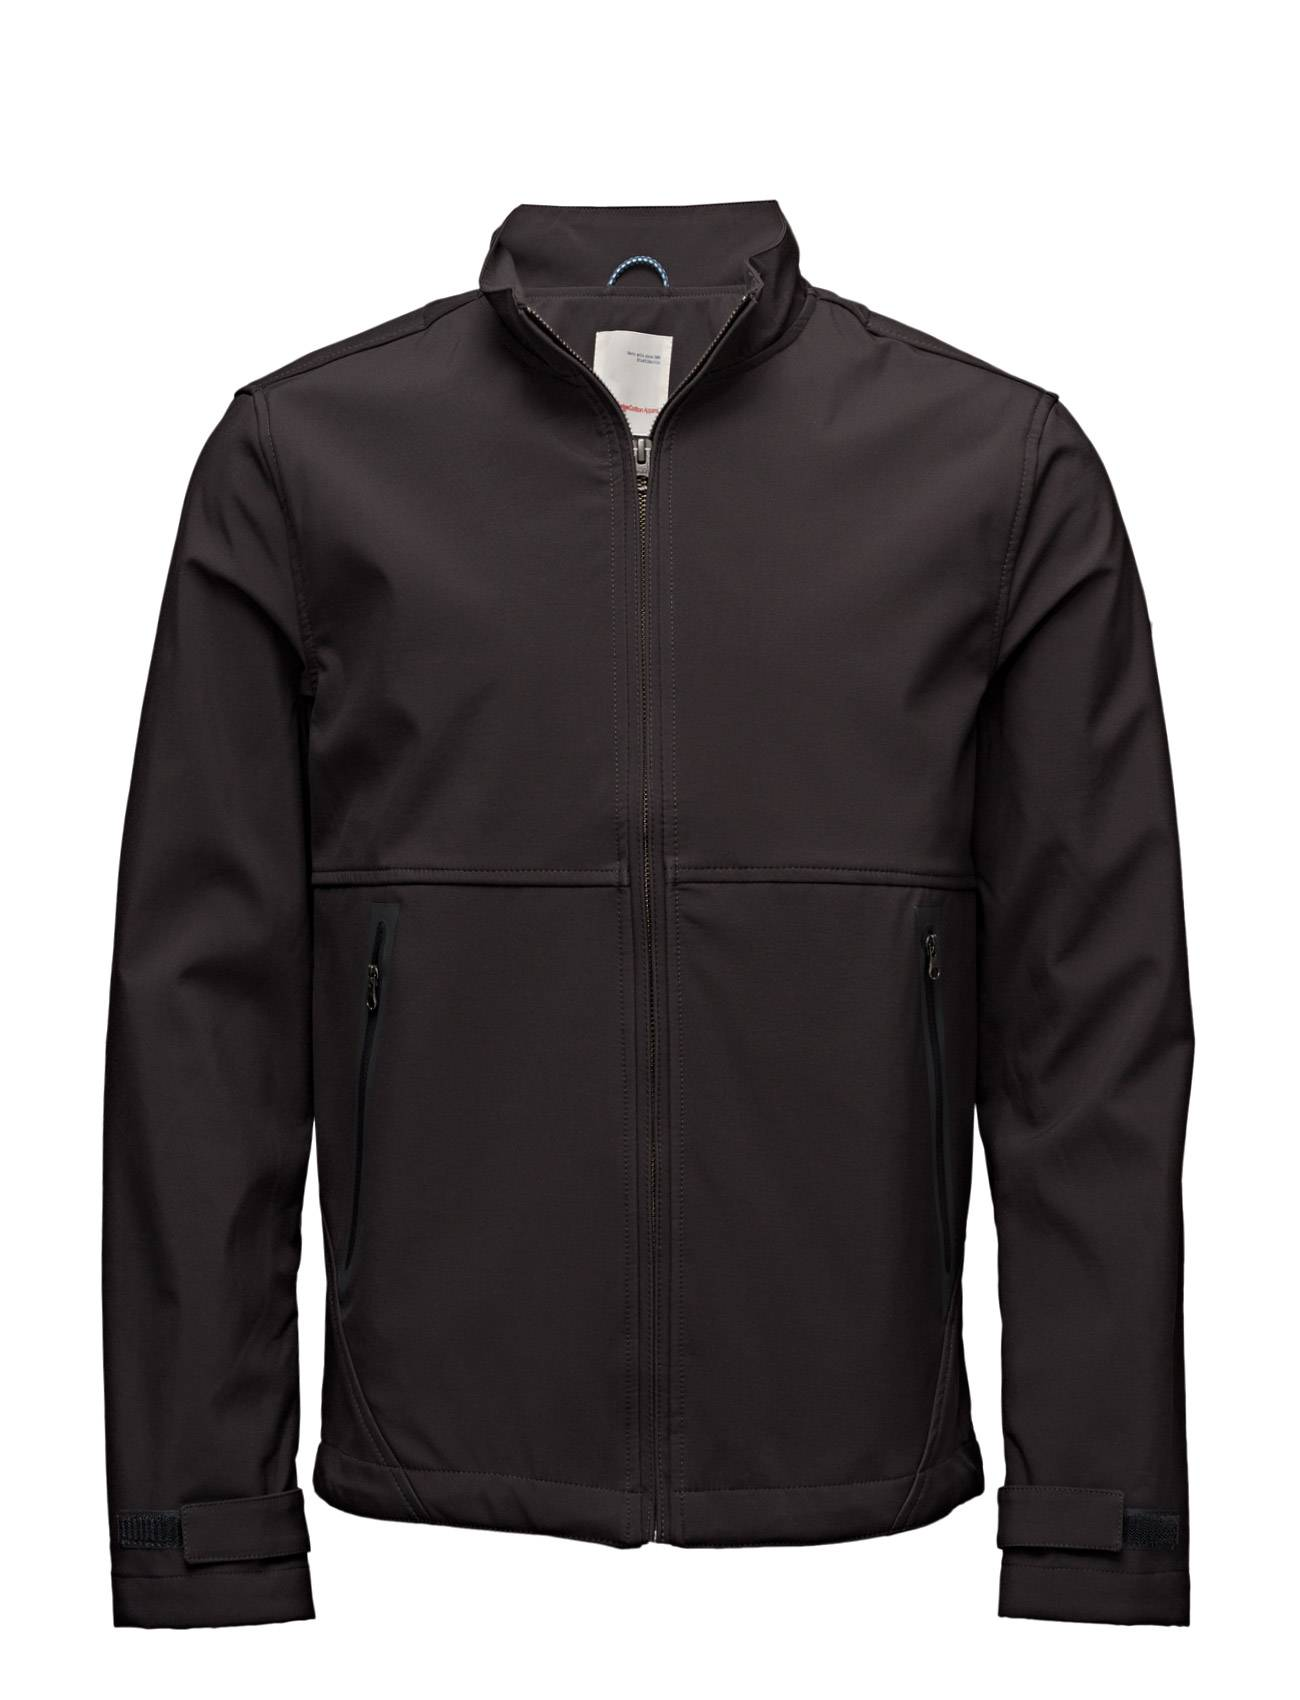 Knowledge Cotton Apparel Soft Shell Jacket - Grs